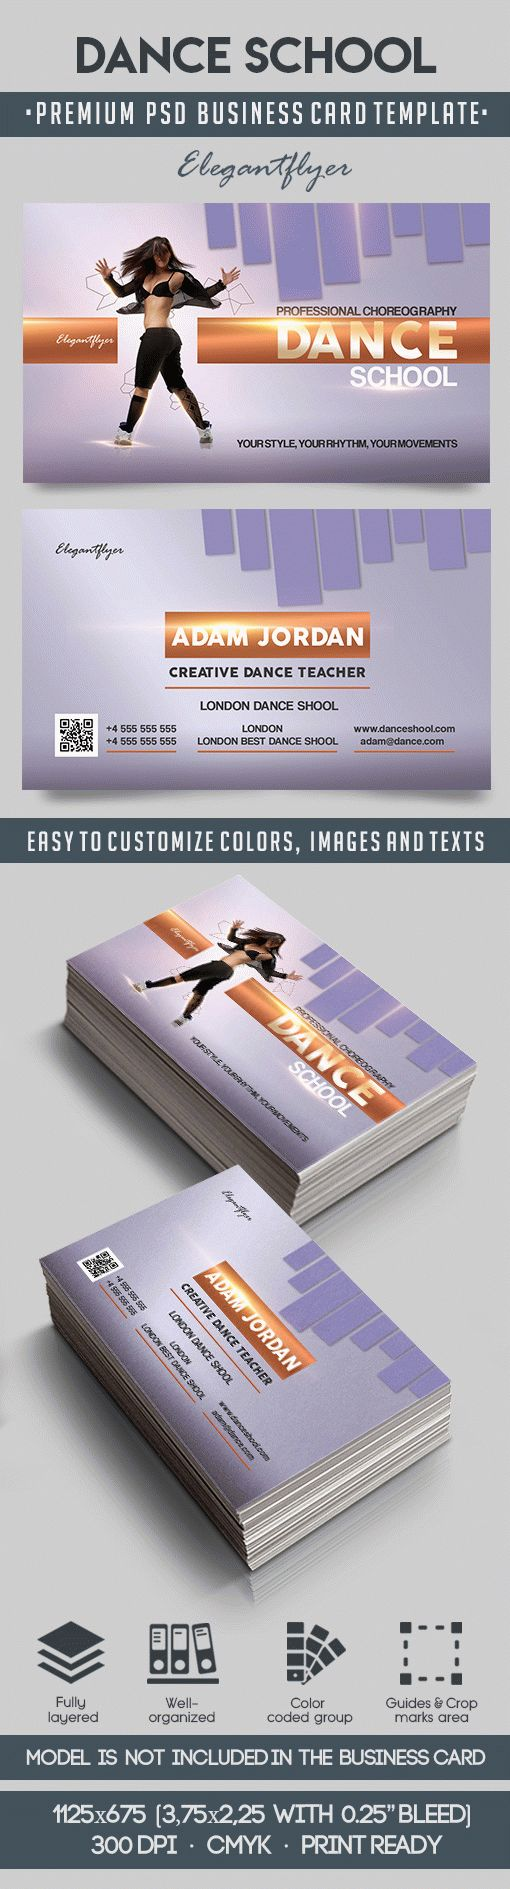 Dance school – Premium Business Card Templates PSD